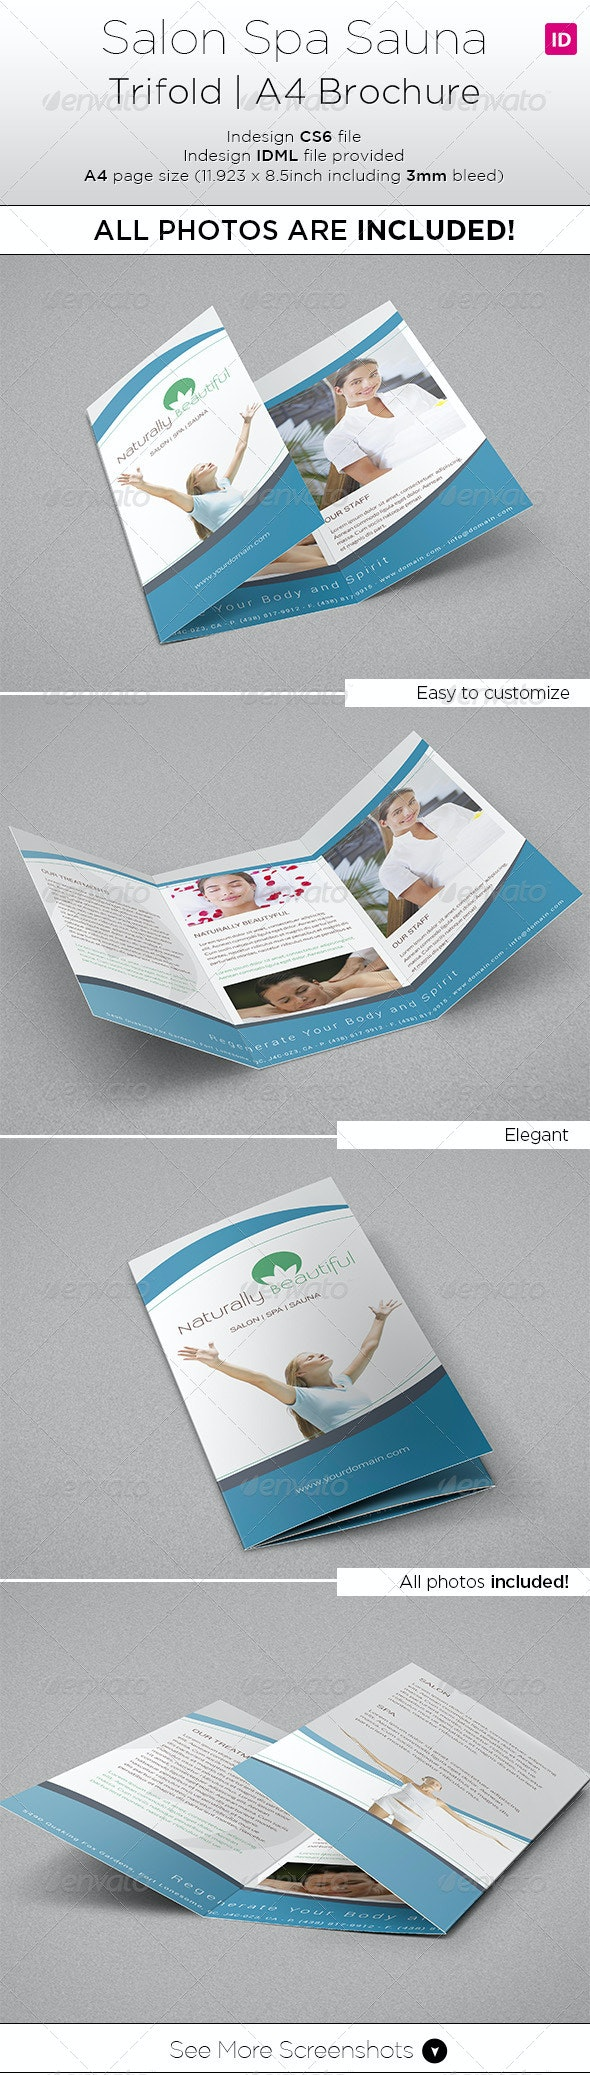 Salon Spa Trifold A4 Brochure - All Photo Included - Informational Brochures